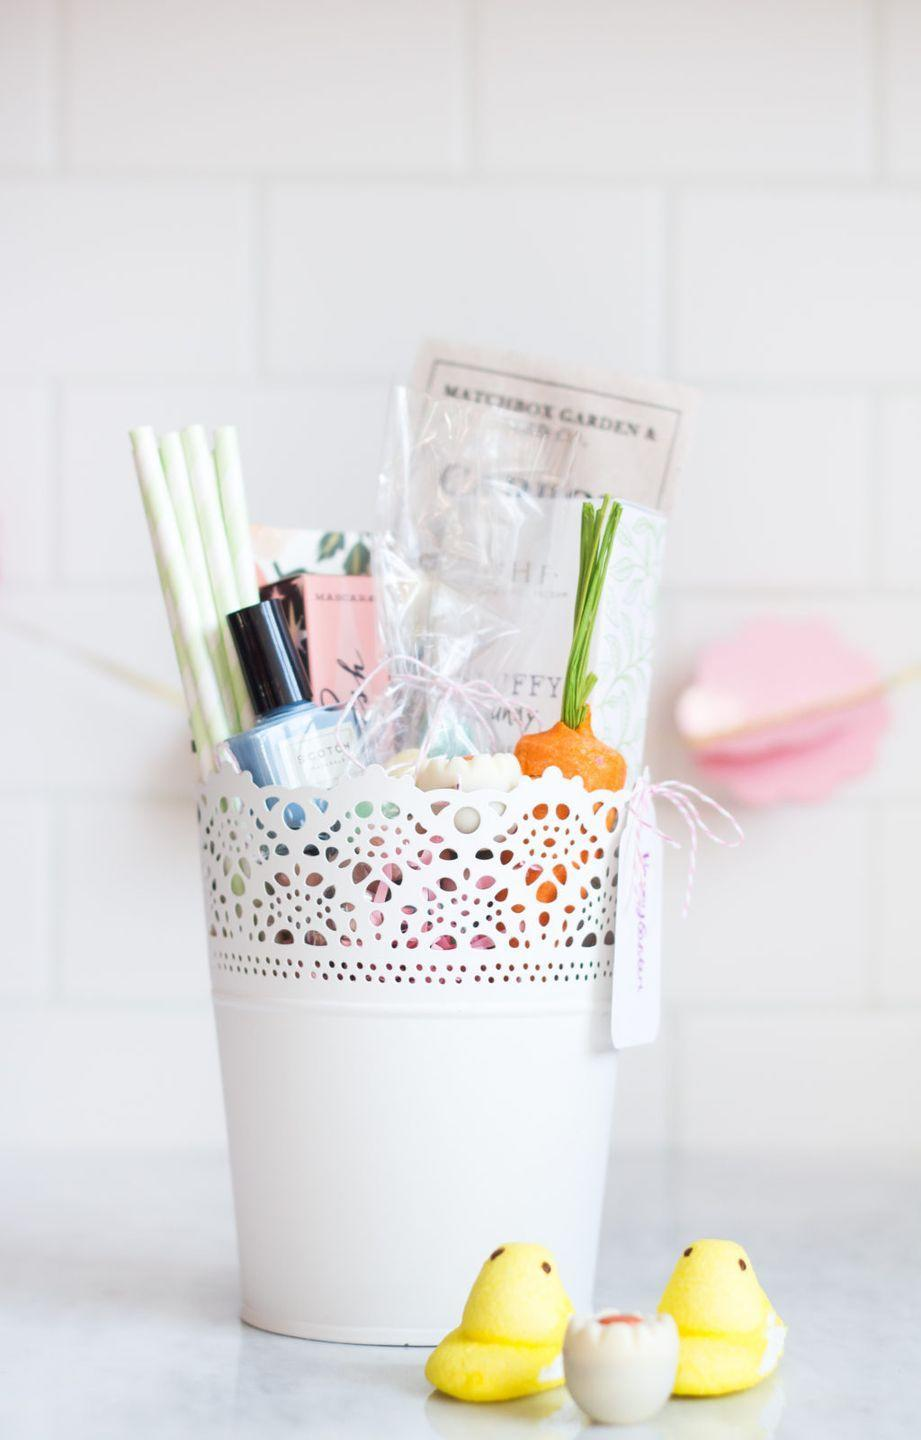 "<p>For an ultra-feminine Easter basket, fill a pretty planter with <a href=""https://www.oprahdaily.com/beauty/a33499050/beauty-owards-2020/"" rel=""nofollow noopener"" target=""_blank"" data-ylk=""slk:beloved beauty products"" class=""link rapid-noclick-resp"">beloved beauty products</a>. </p><p>Get the tutorial at <a href=""http://www.theblondielocks.com/easter-basket-inspiration/"" rel=""nofollow noopener"" target=""_blank"" data-ylk=""slk:The Blondie Locks."" class=""link rapid-noclick-resp"">The Blondie Locks.</a></p><p><a class=""link rapid-noclick-resp"" href=""https://www.amazon.com/MyGift-Ceramic-Vintage-Style-Hobnail-Textured/dp/B00SWBSZE2?tag=syn-yahoo-20&ascsubtag=%5Bartid%7C10072.g.30506642%5Bsrc%7Cyahoo-us"" rel=""nofollow noopener"" target=""_blank"" data-ylk=""slk:SHOP PLANTER"">SHOP PLANTER</a></p>"